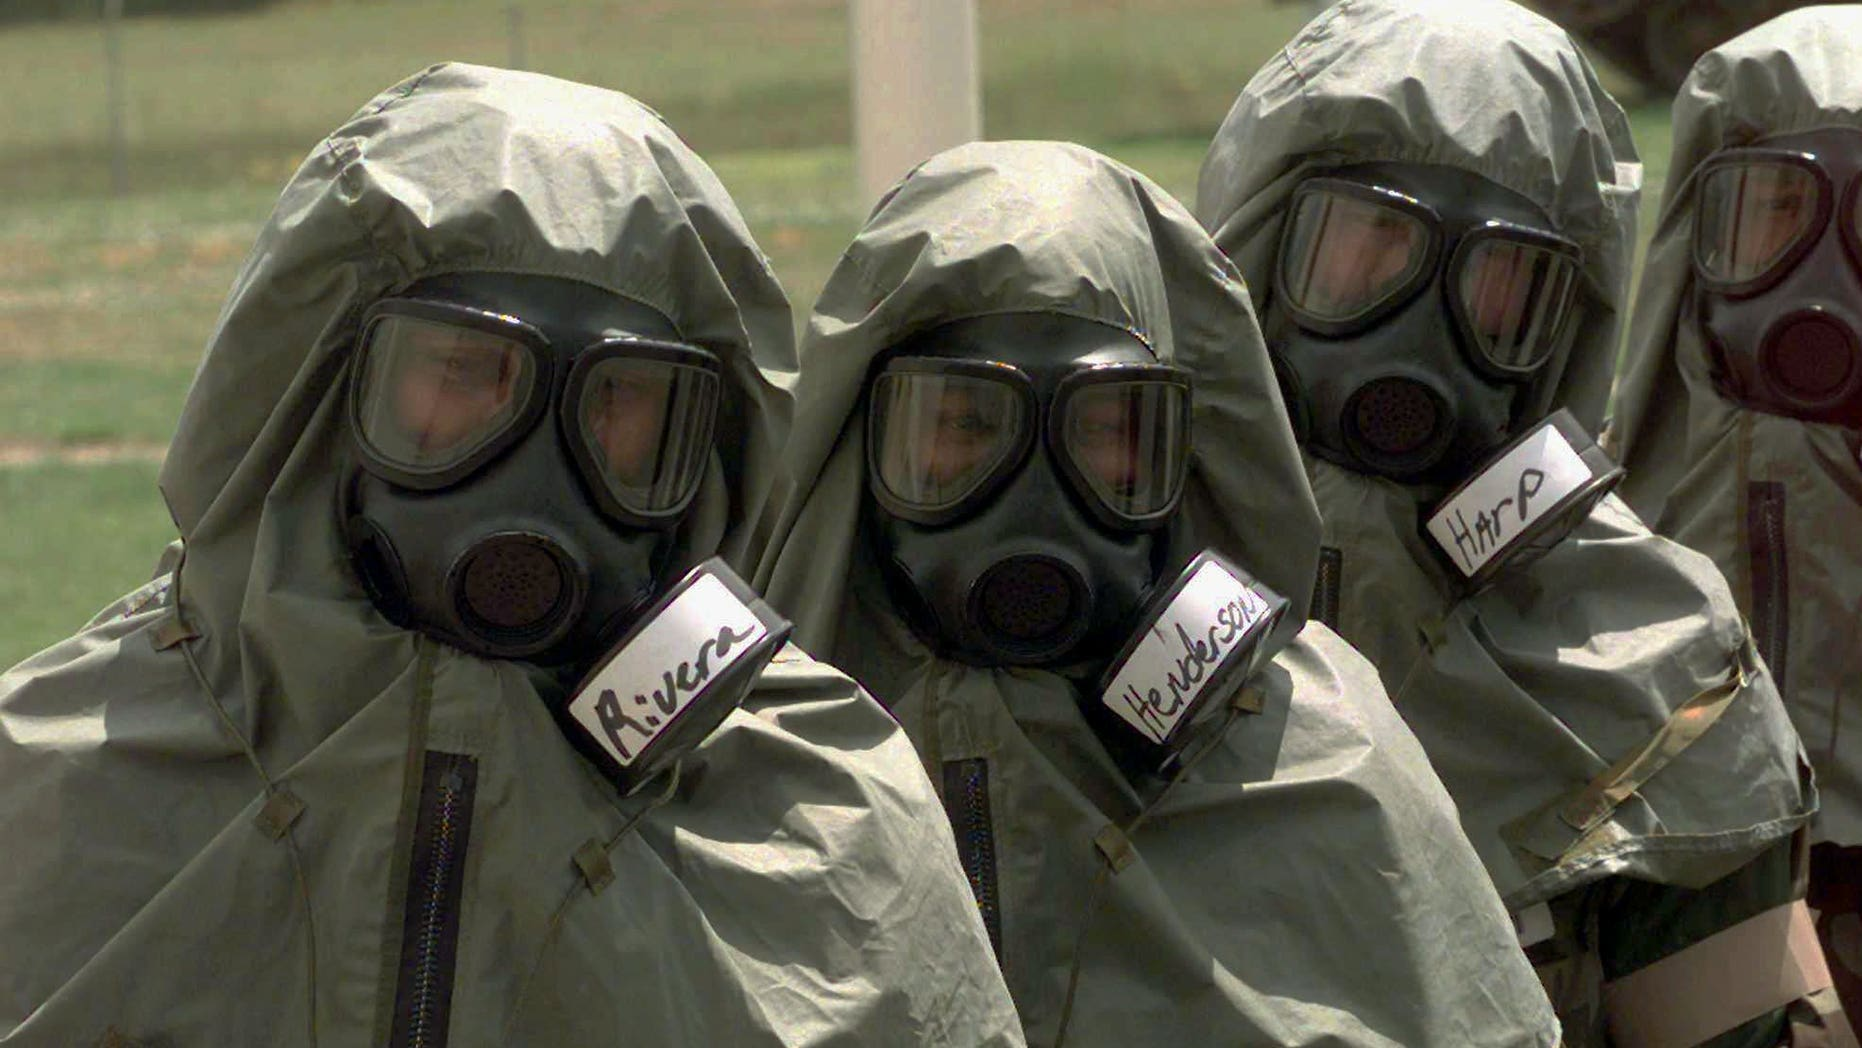 Army lieutenants listen during chemical training at the Chemical Decontamination Training Facility at Fort McClellan near Anniston, Ala. on Tuesday, May 20, 1997. The CDTF is the only U.S. military facility where live chemical training occurs. (AP Photo/Dave Martin)